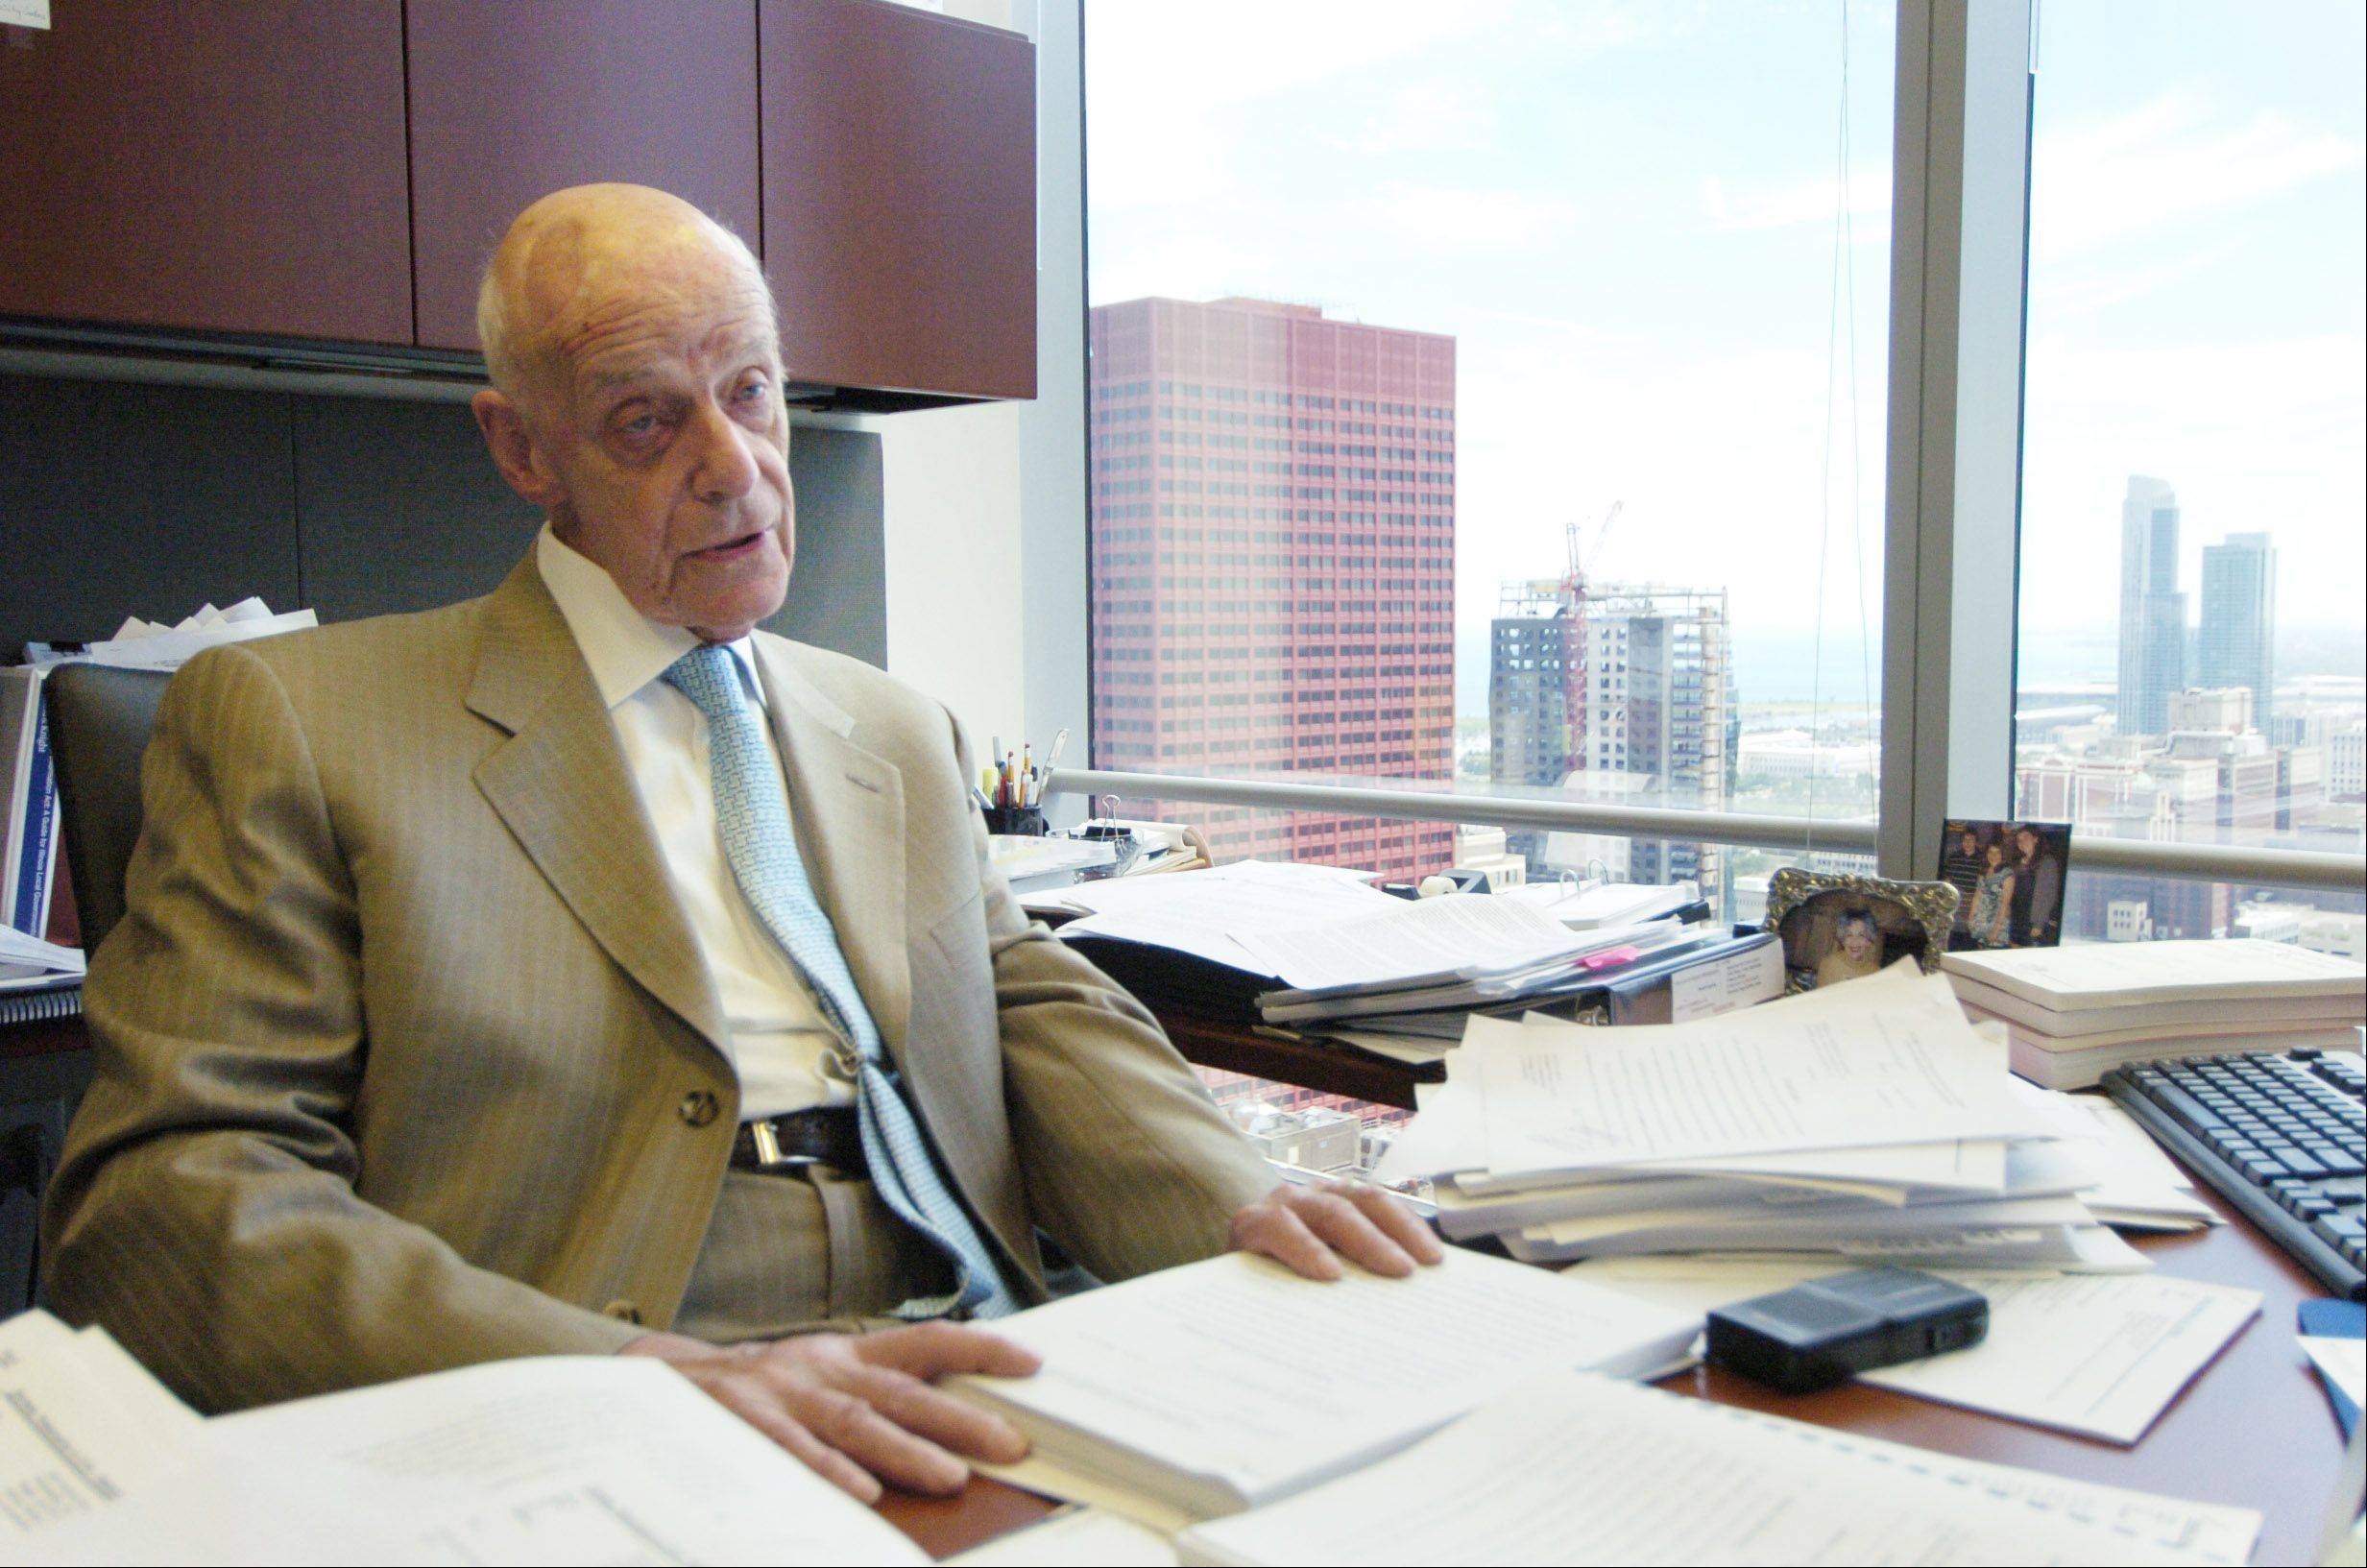 Attorney Jack Siegel, shown at his Chicago office, has been village attorney for Arlington Heights for 50 years. He also serves as village attorney of Schaumburg.